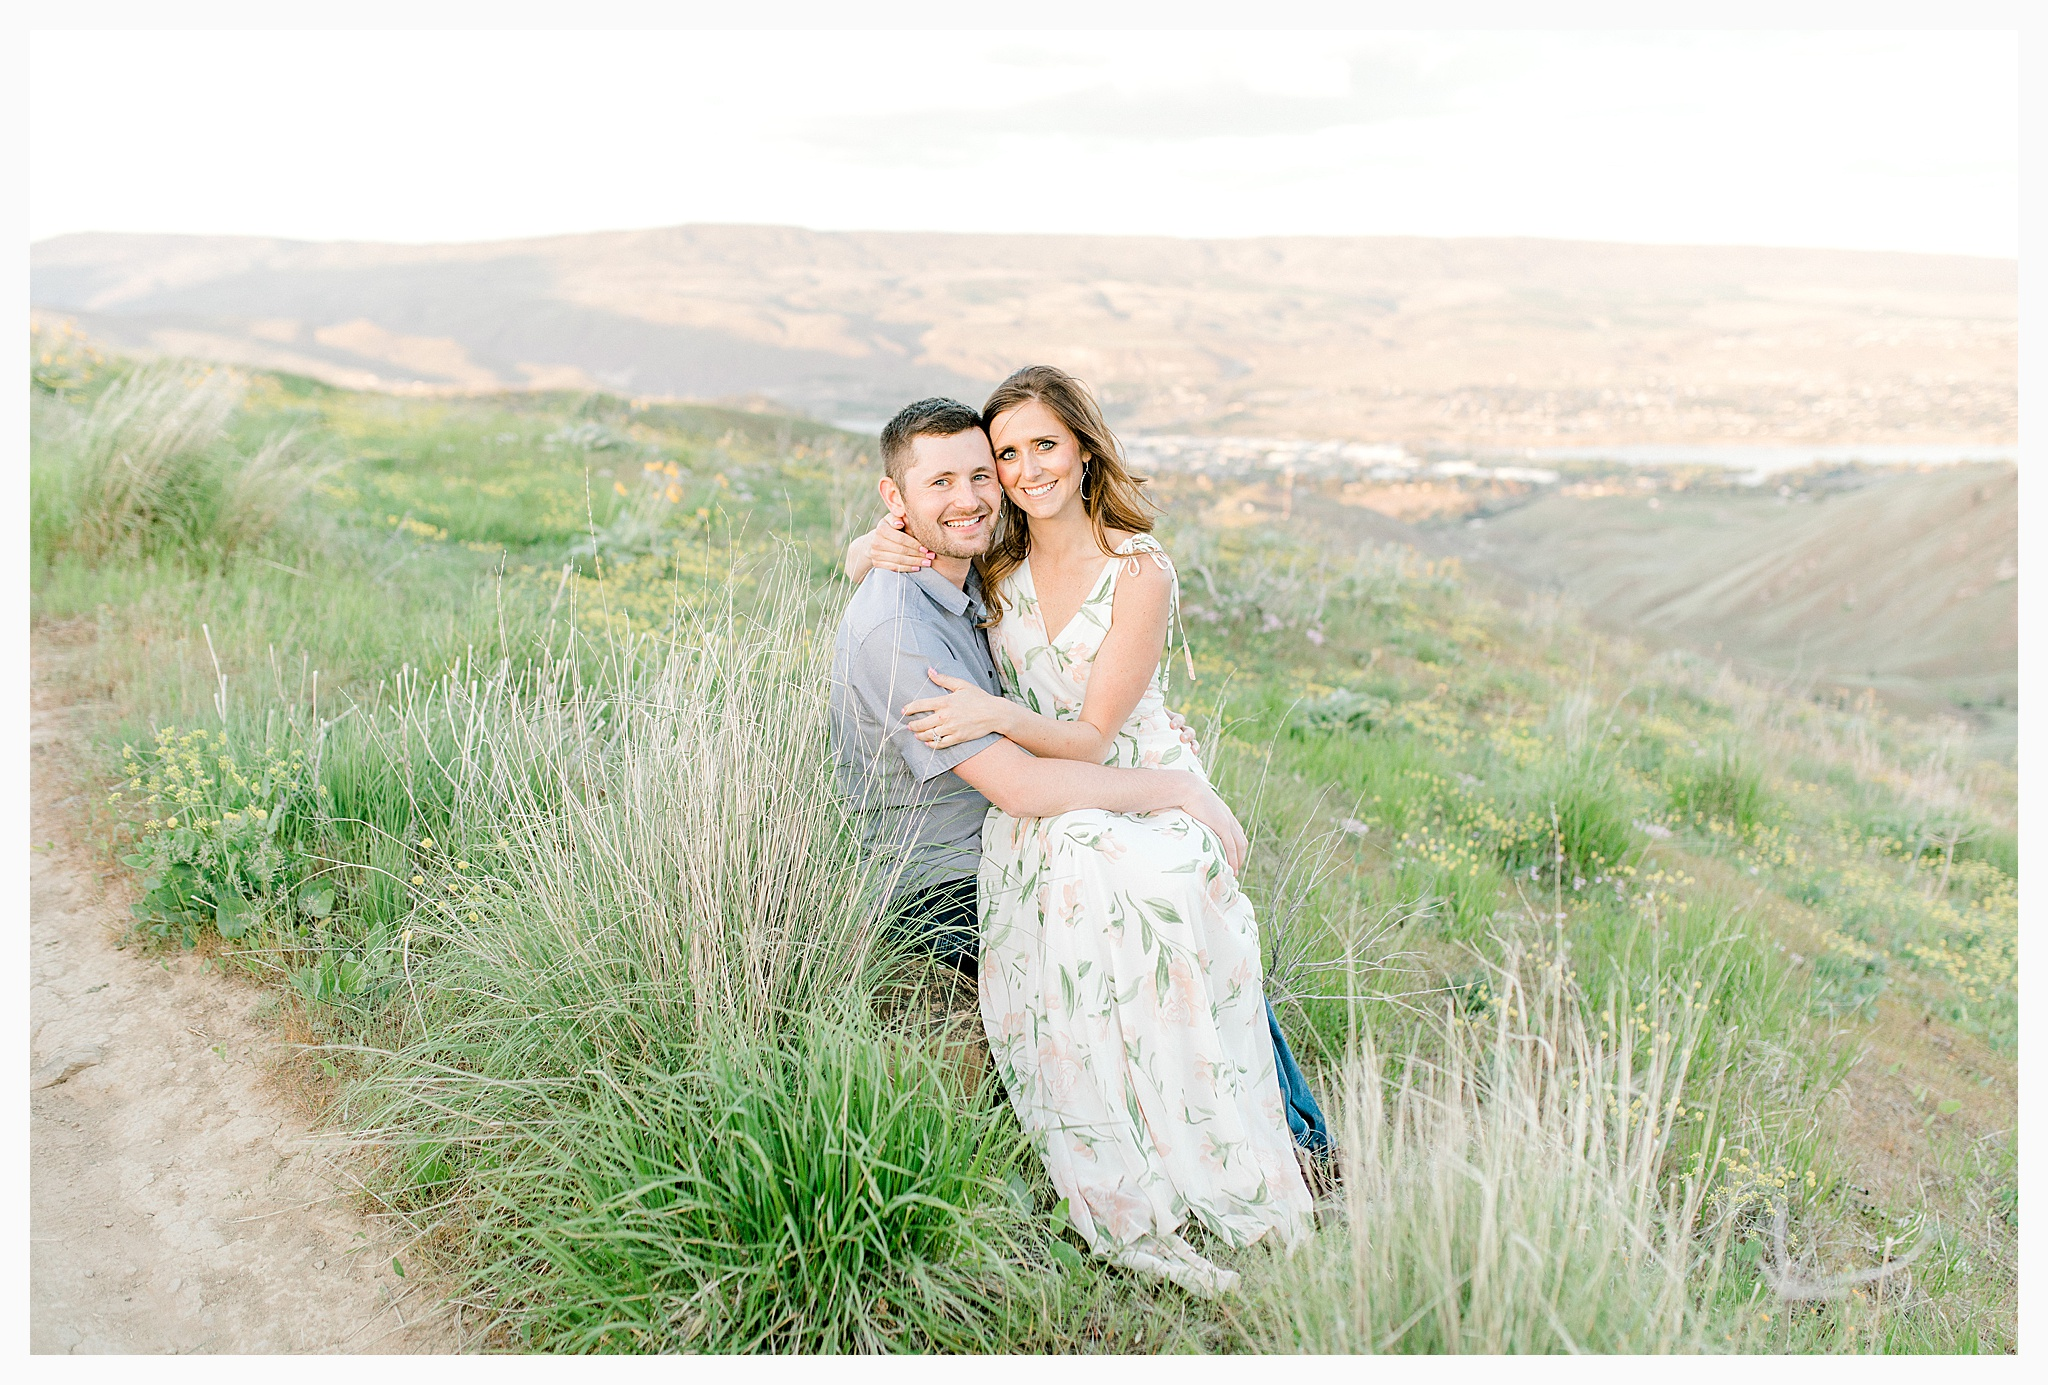 Engagement session amongst the wildflowers in Wenatchee, Washington | Engagement Session Outfit Inspiration for Wedding Photography with Emma Rose Company | Light and Airy PNW Photographer, Seattle Bride_0018.jpg